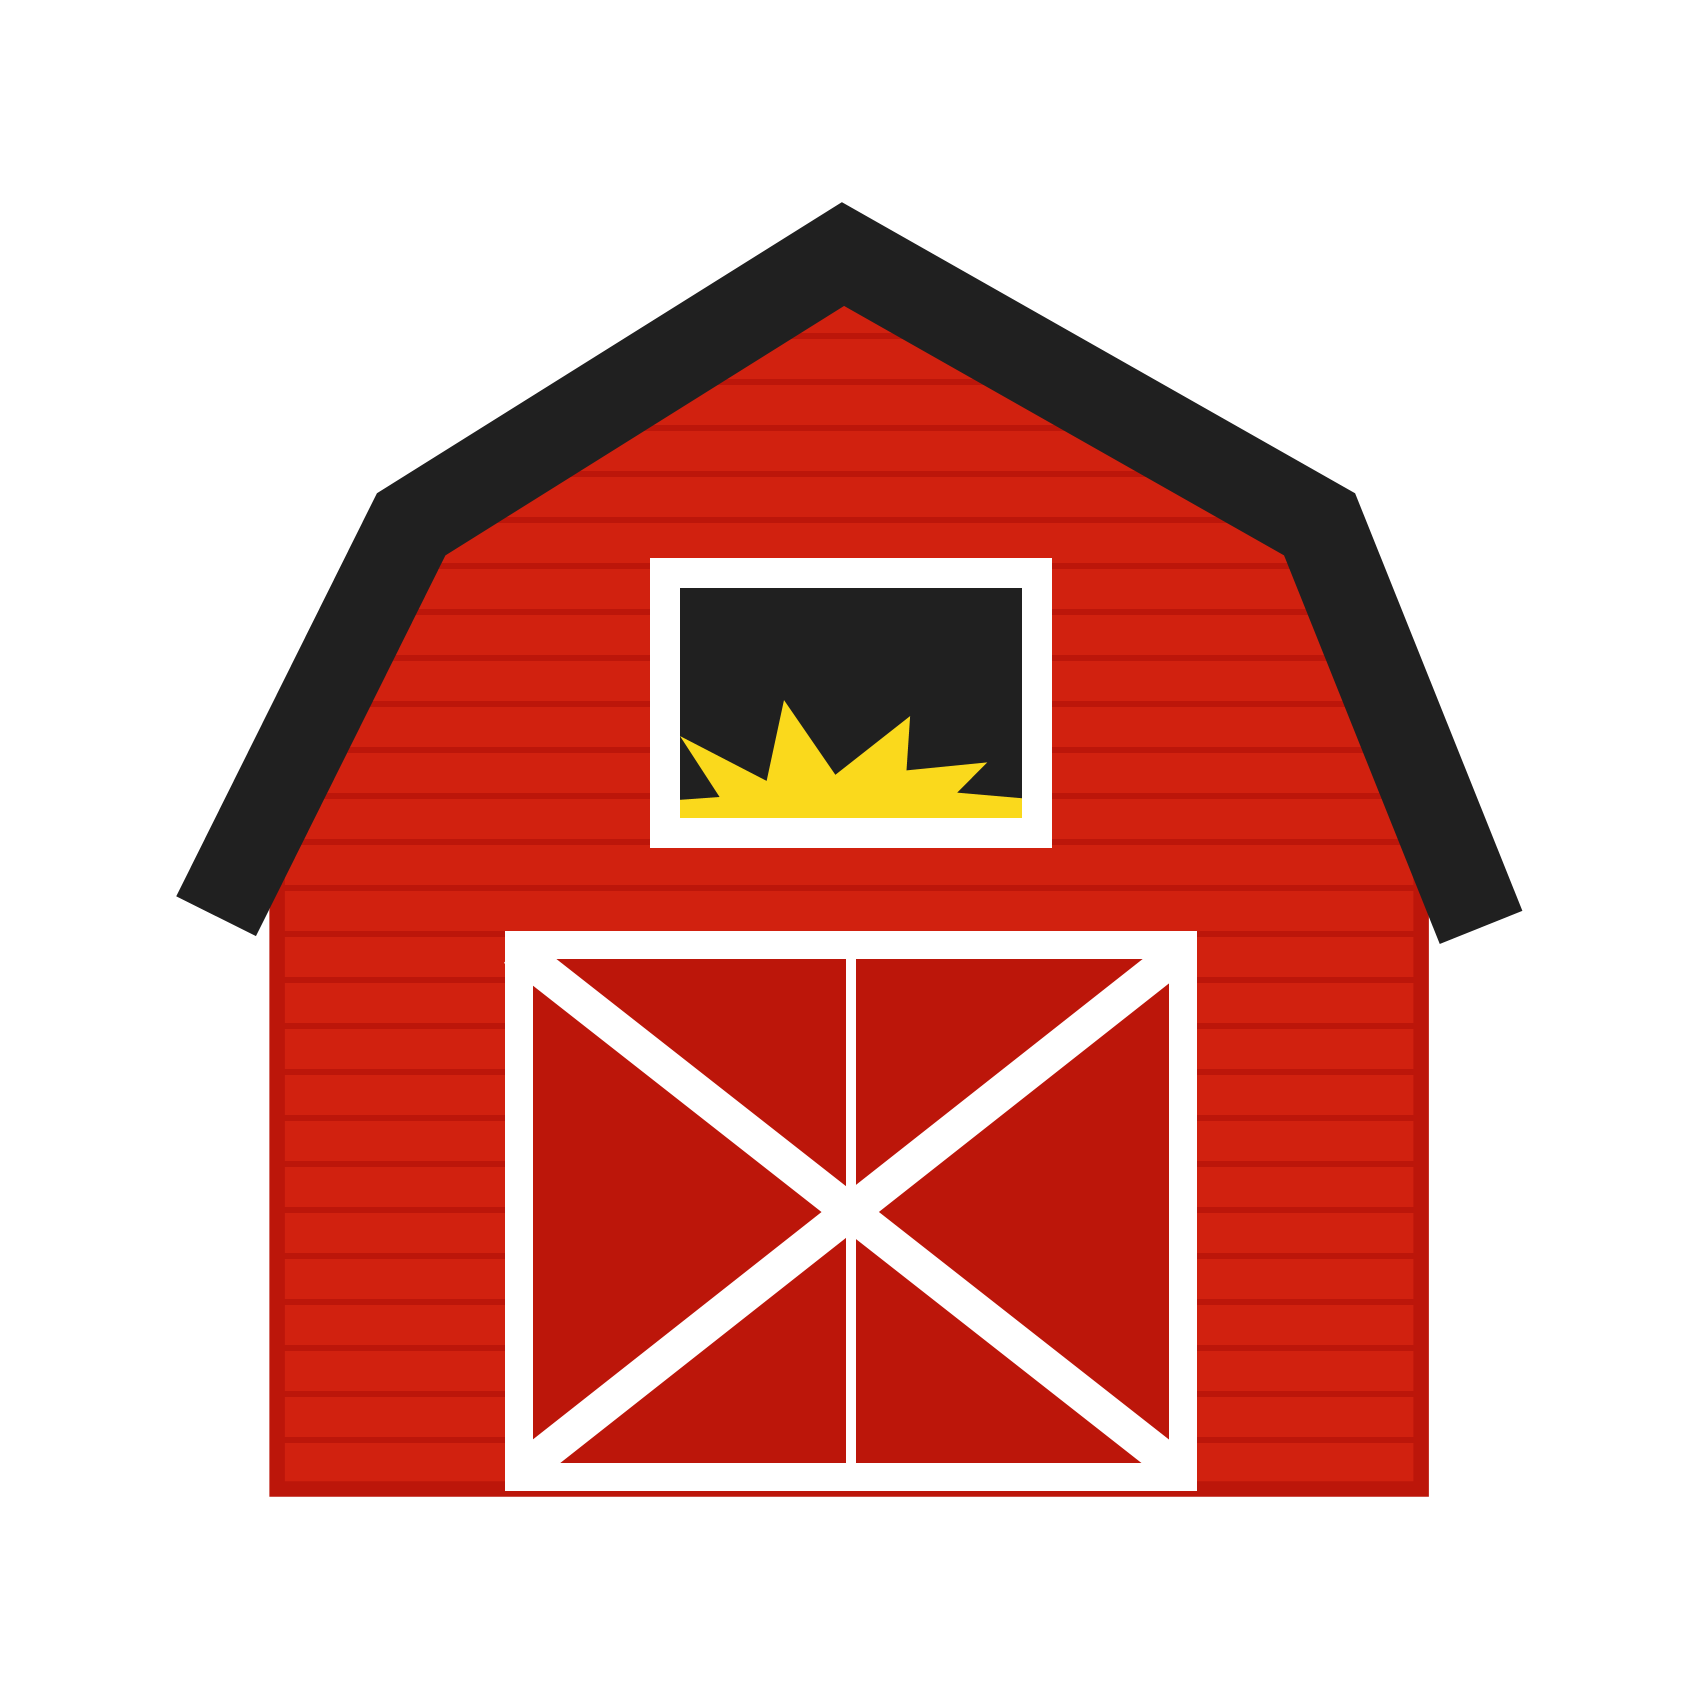 Free Farm Barn Cliparts, Download Free Clip Art, Free Clip Art on ... clipart freeuse stock